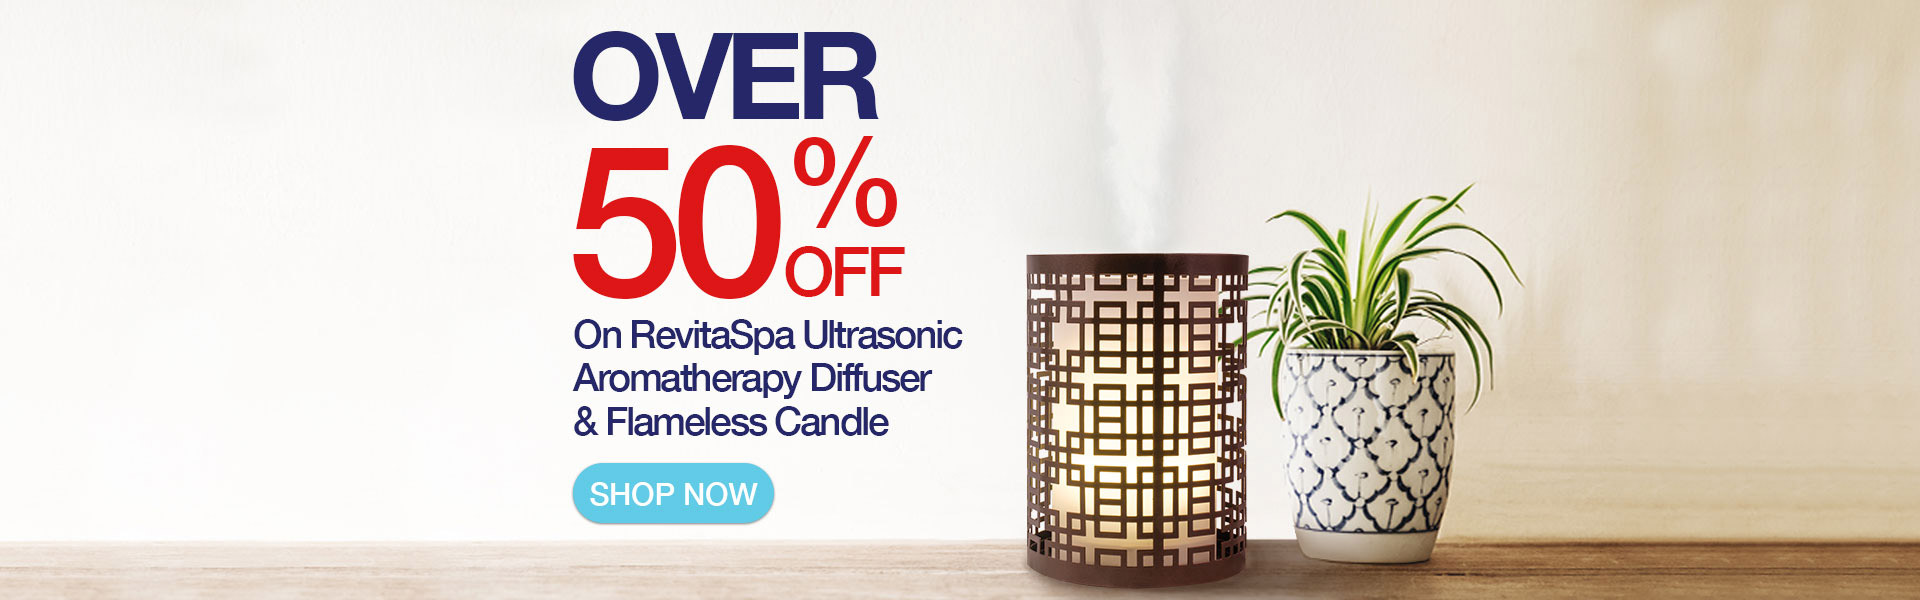 RevitaSpa Ultrasonic Aromatherapy Diffuser and Flameless Candle